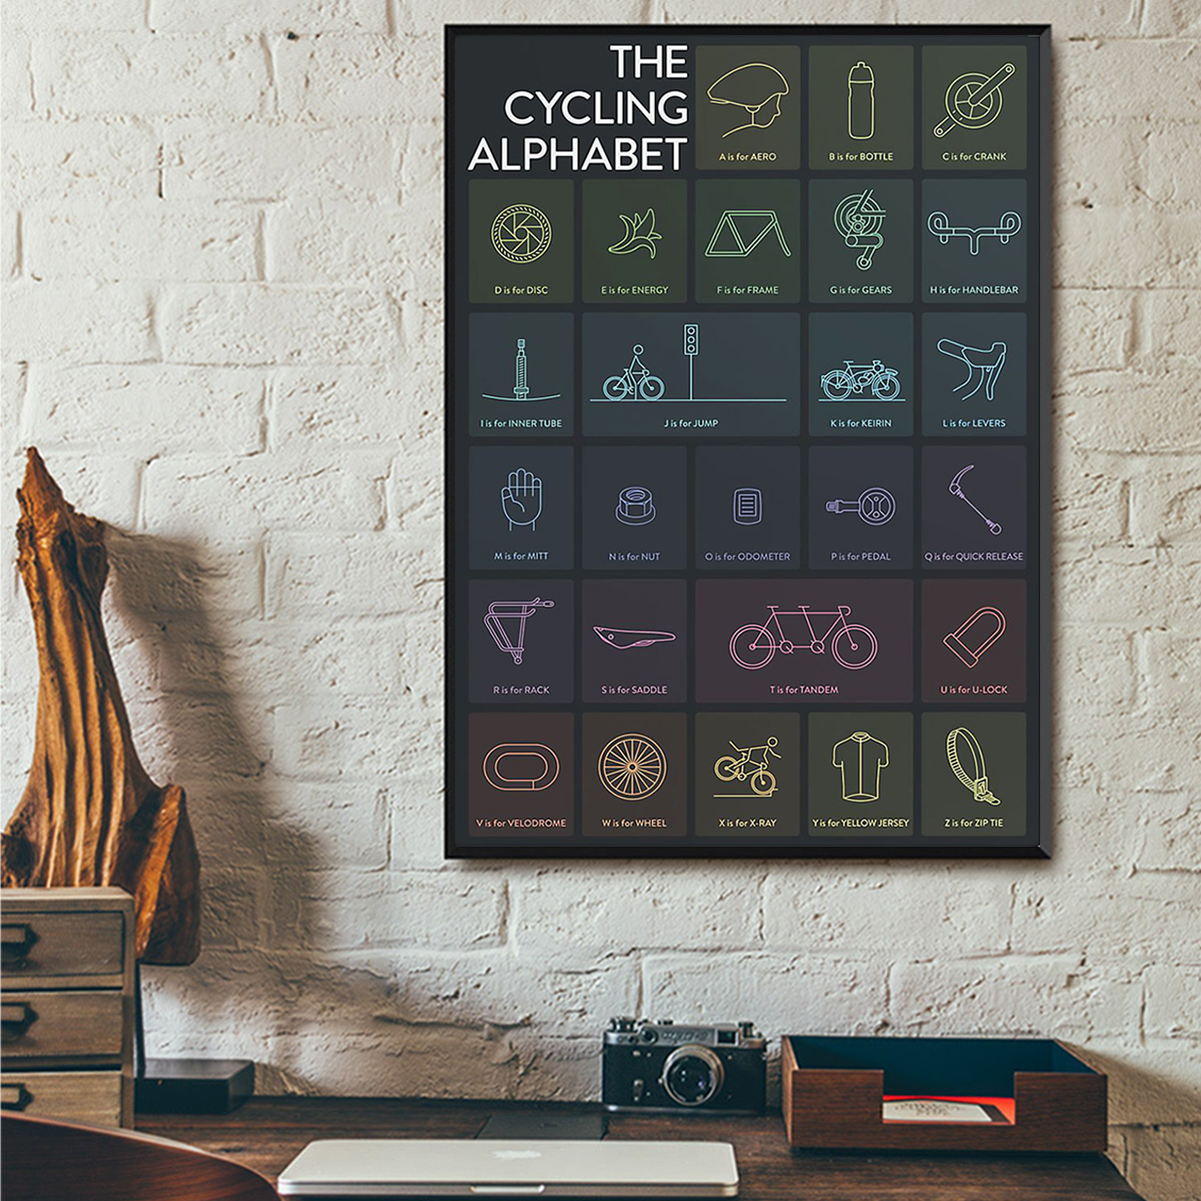 The cycling alphabet poster A3